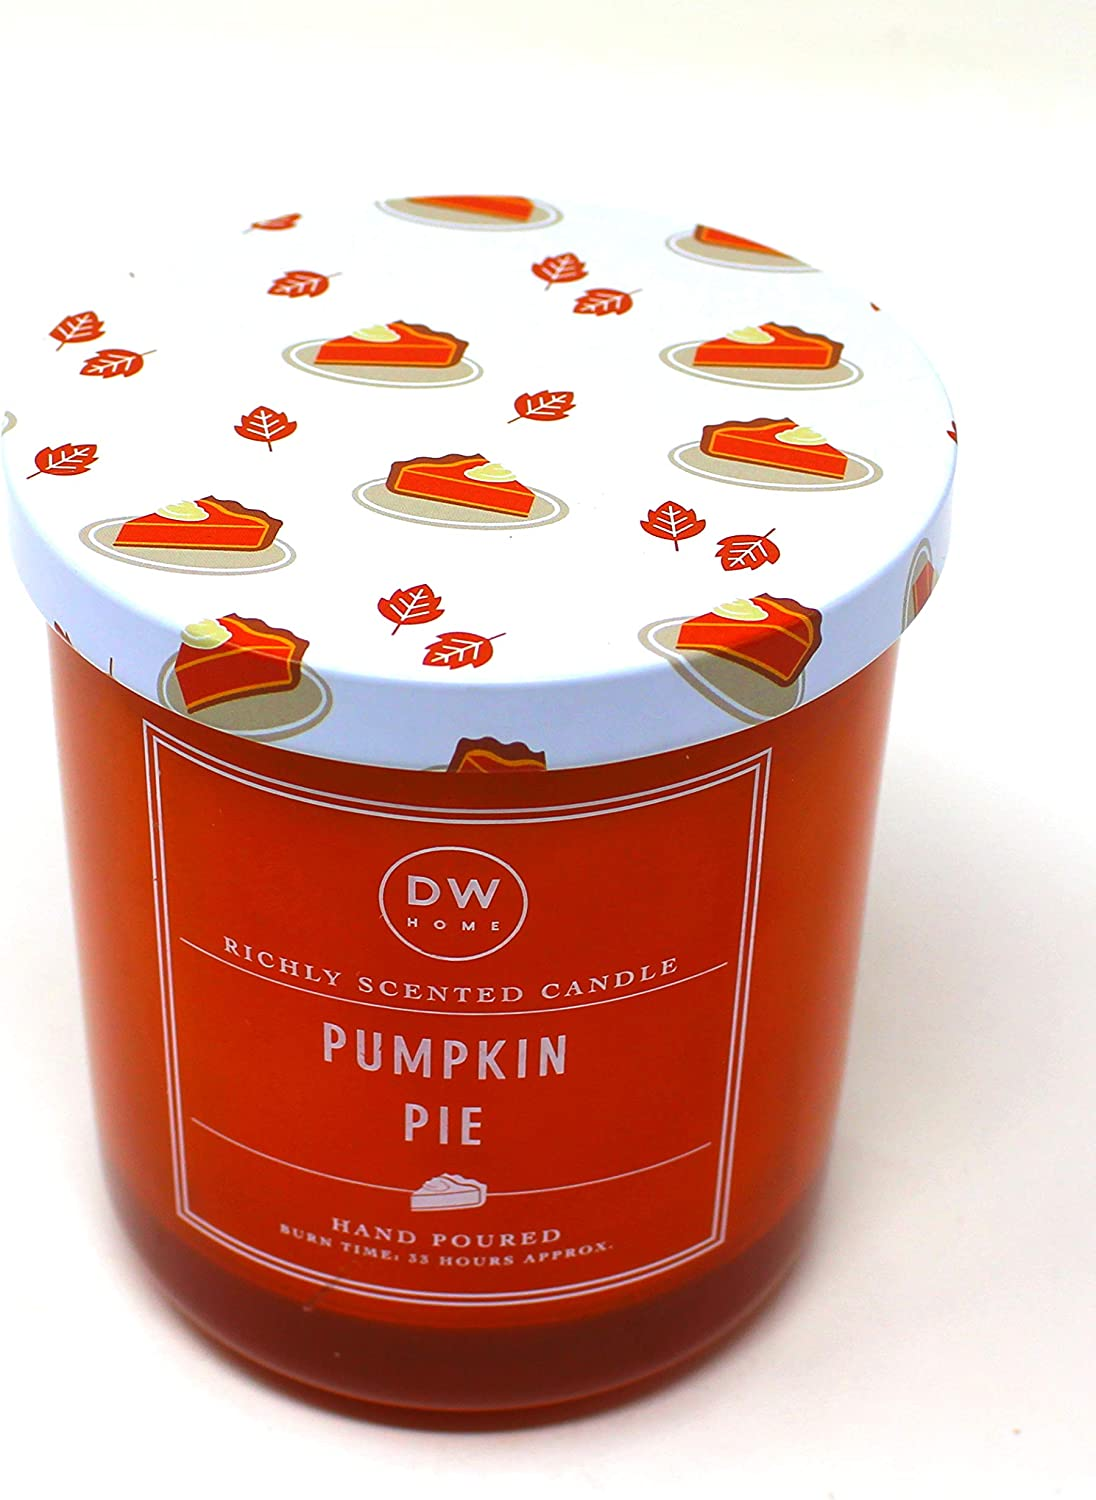 DW Home Richly Scented Limited Edition Pumpkin Pie Hand Poured Candle 9.1 oz